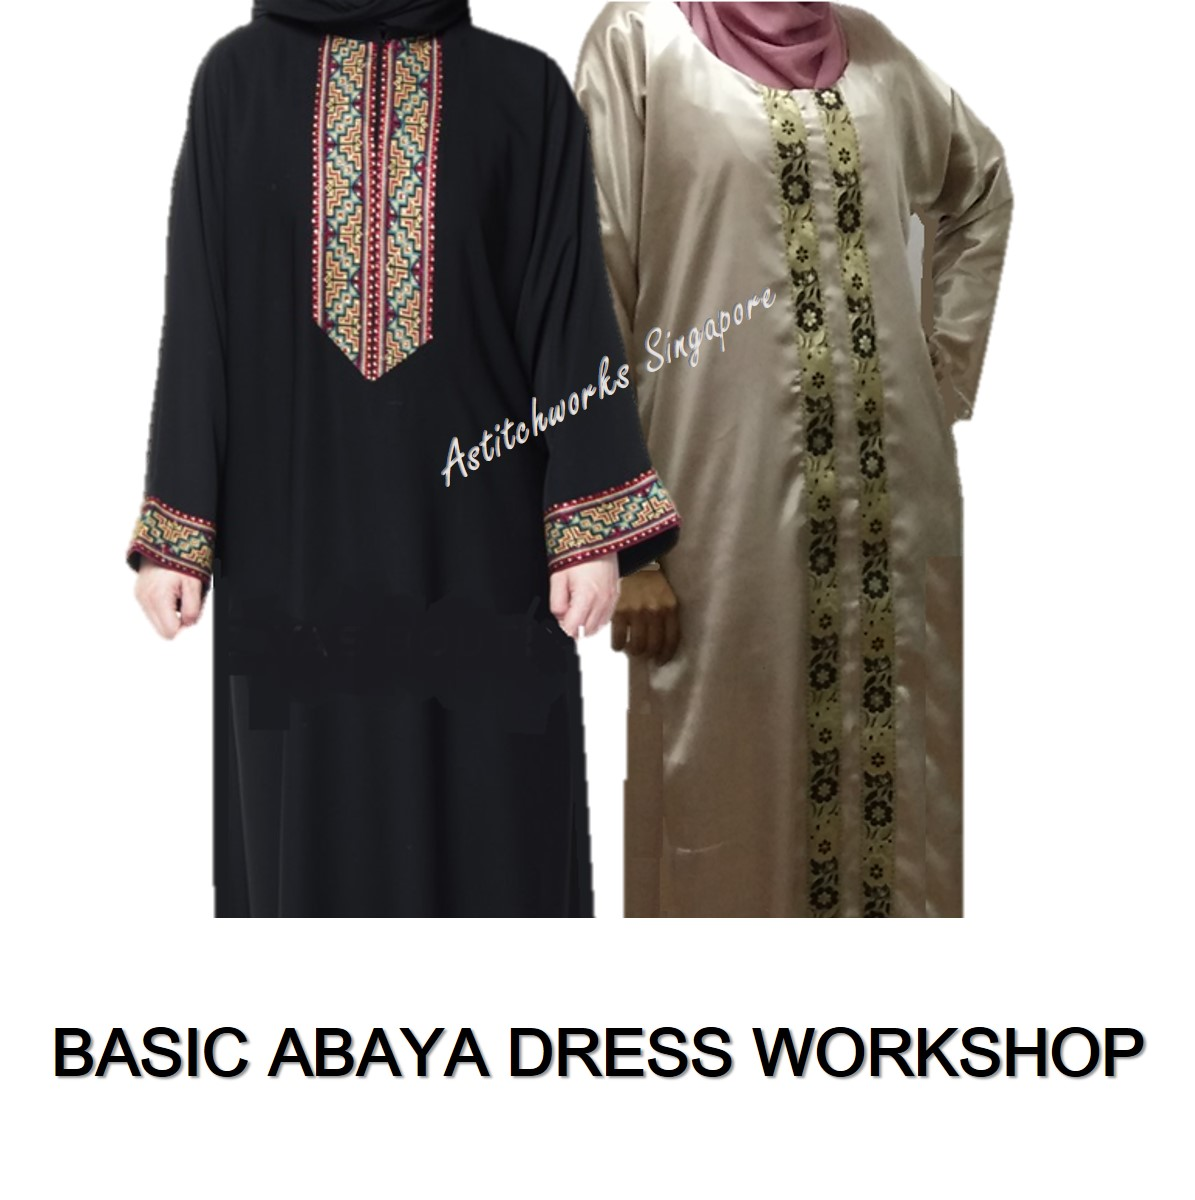 Sew Basic Abaya Dress